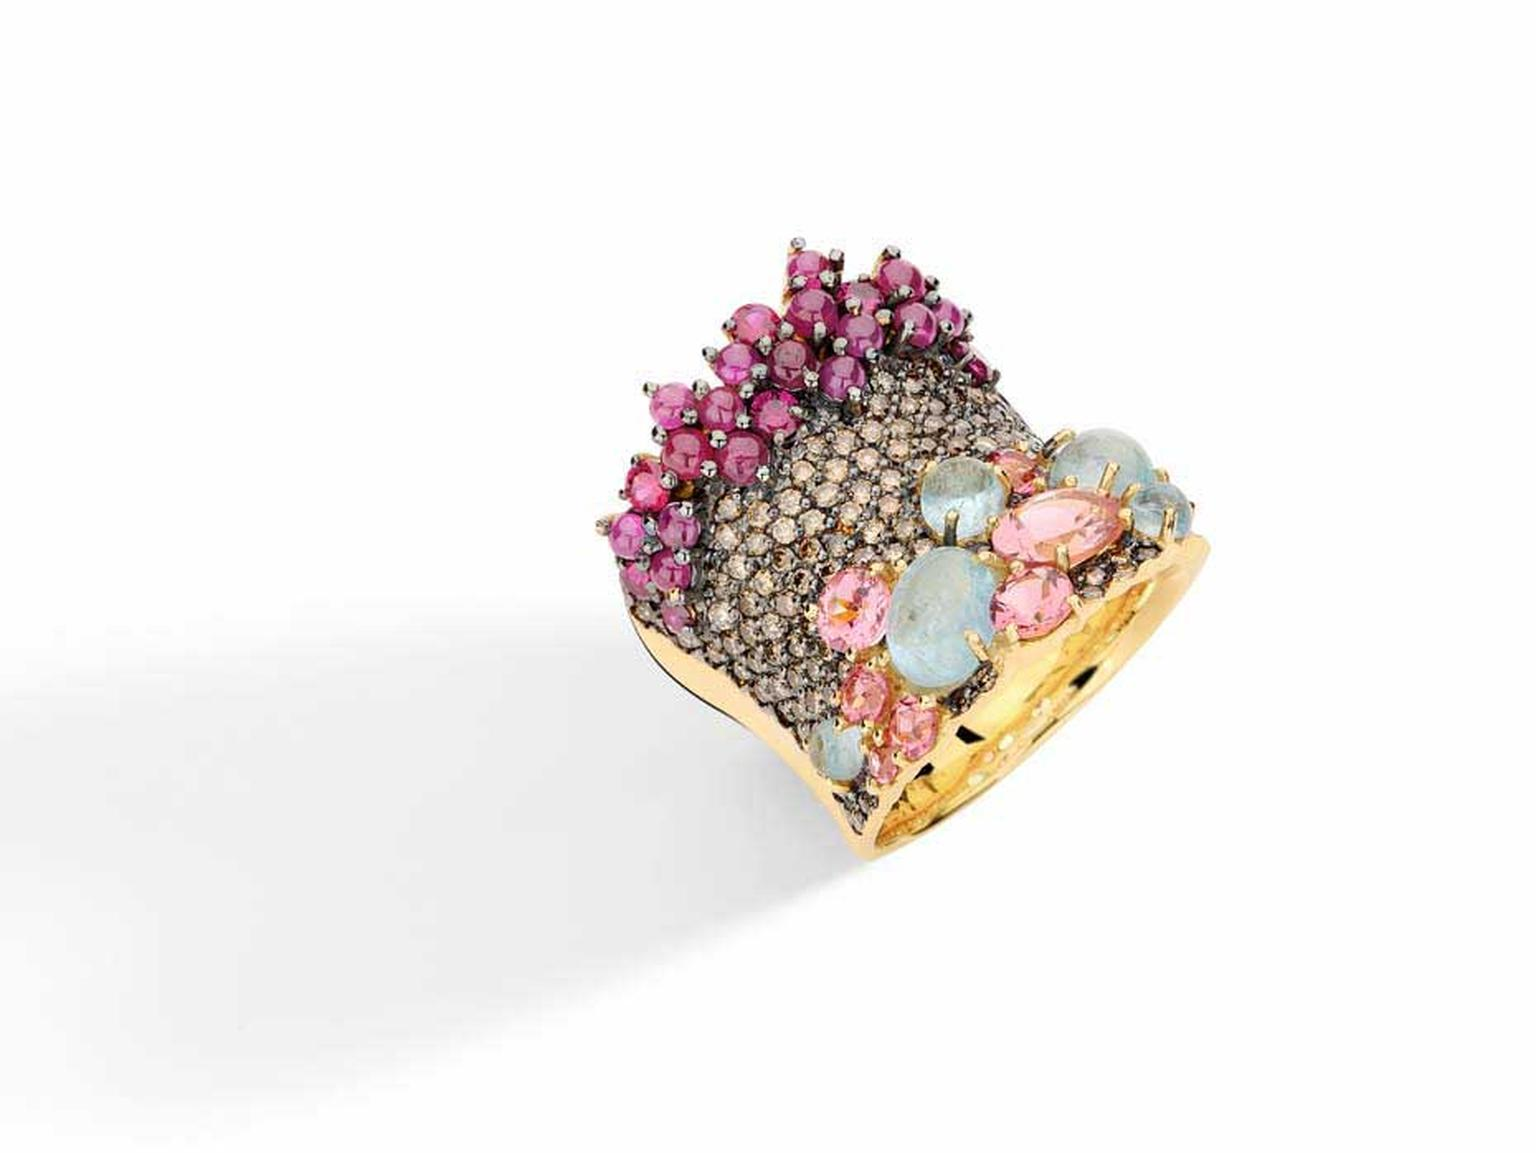 Brumani Baobab collection yellow gold ring with brown diamonds, aquamarines, rubies and pink tourmalines.